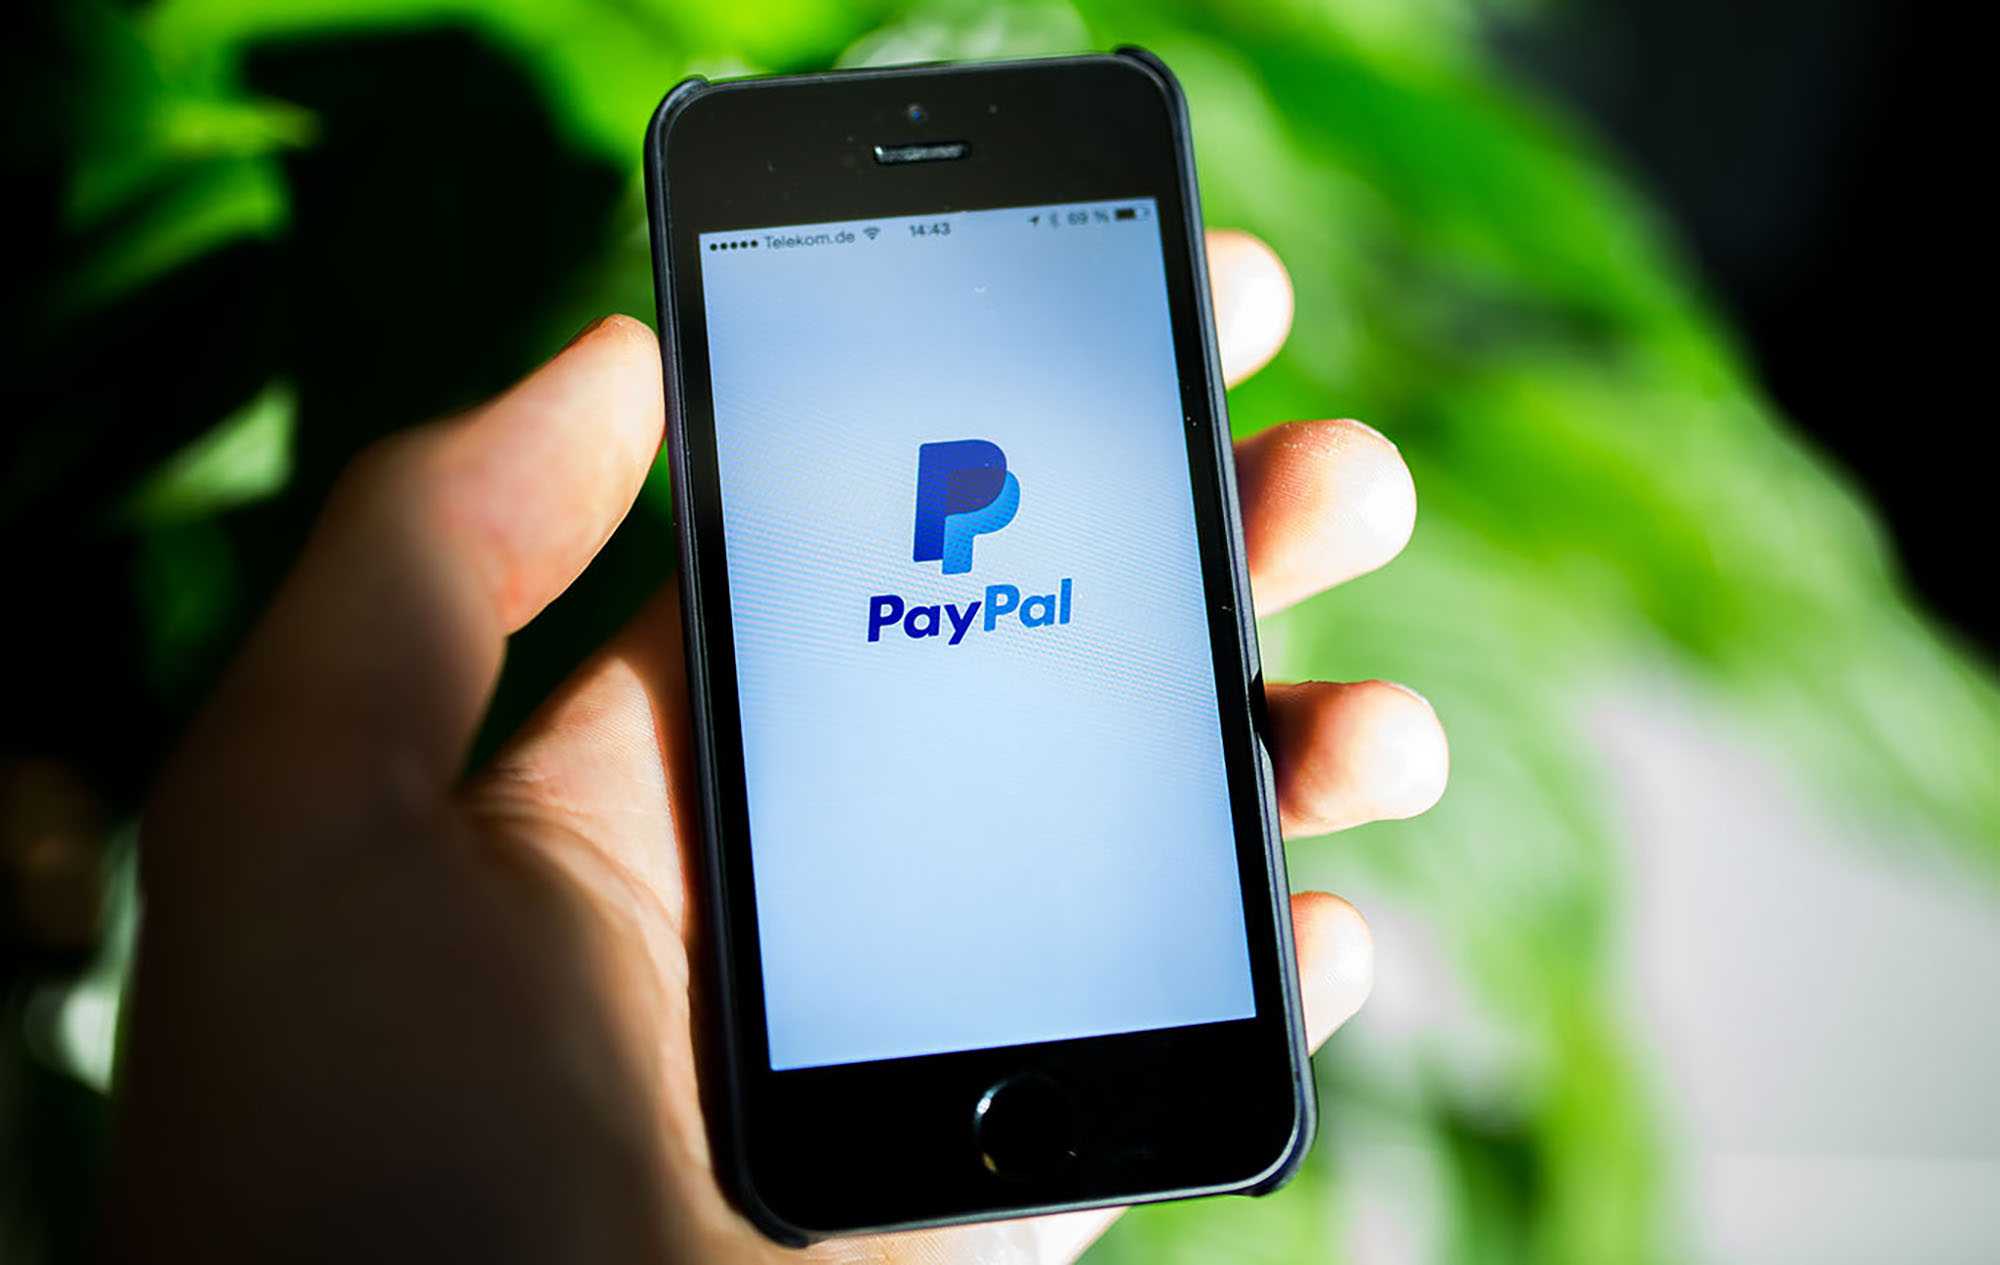 Someone's hand holding a phone with the PayPal app loaded.